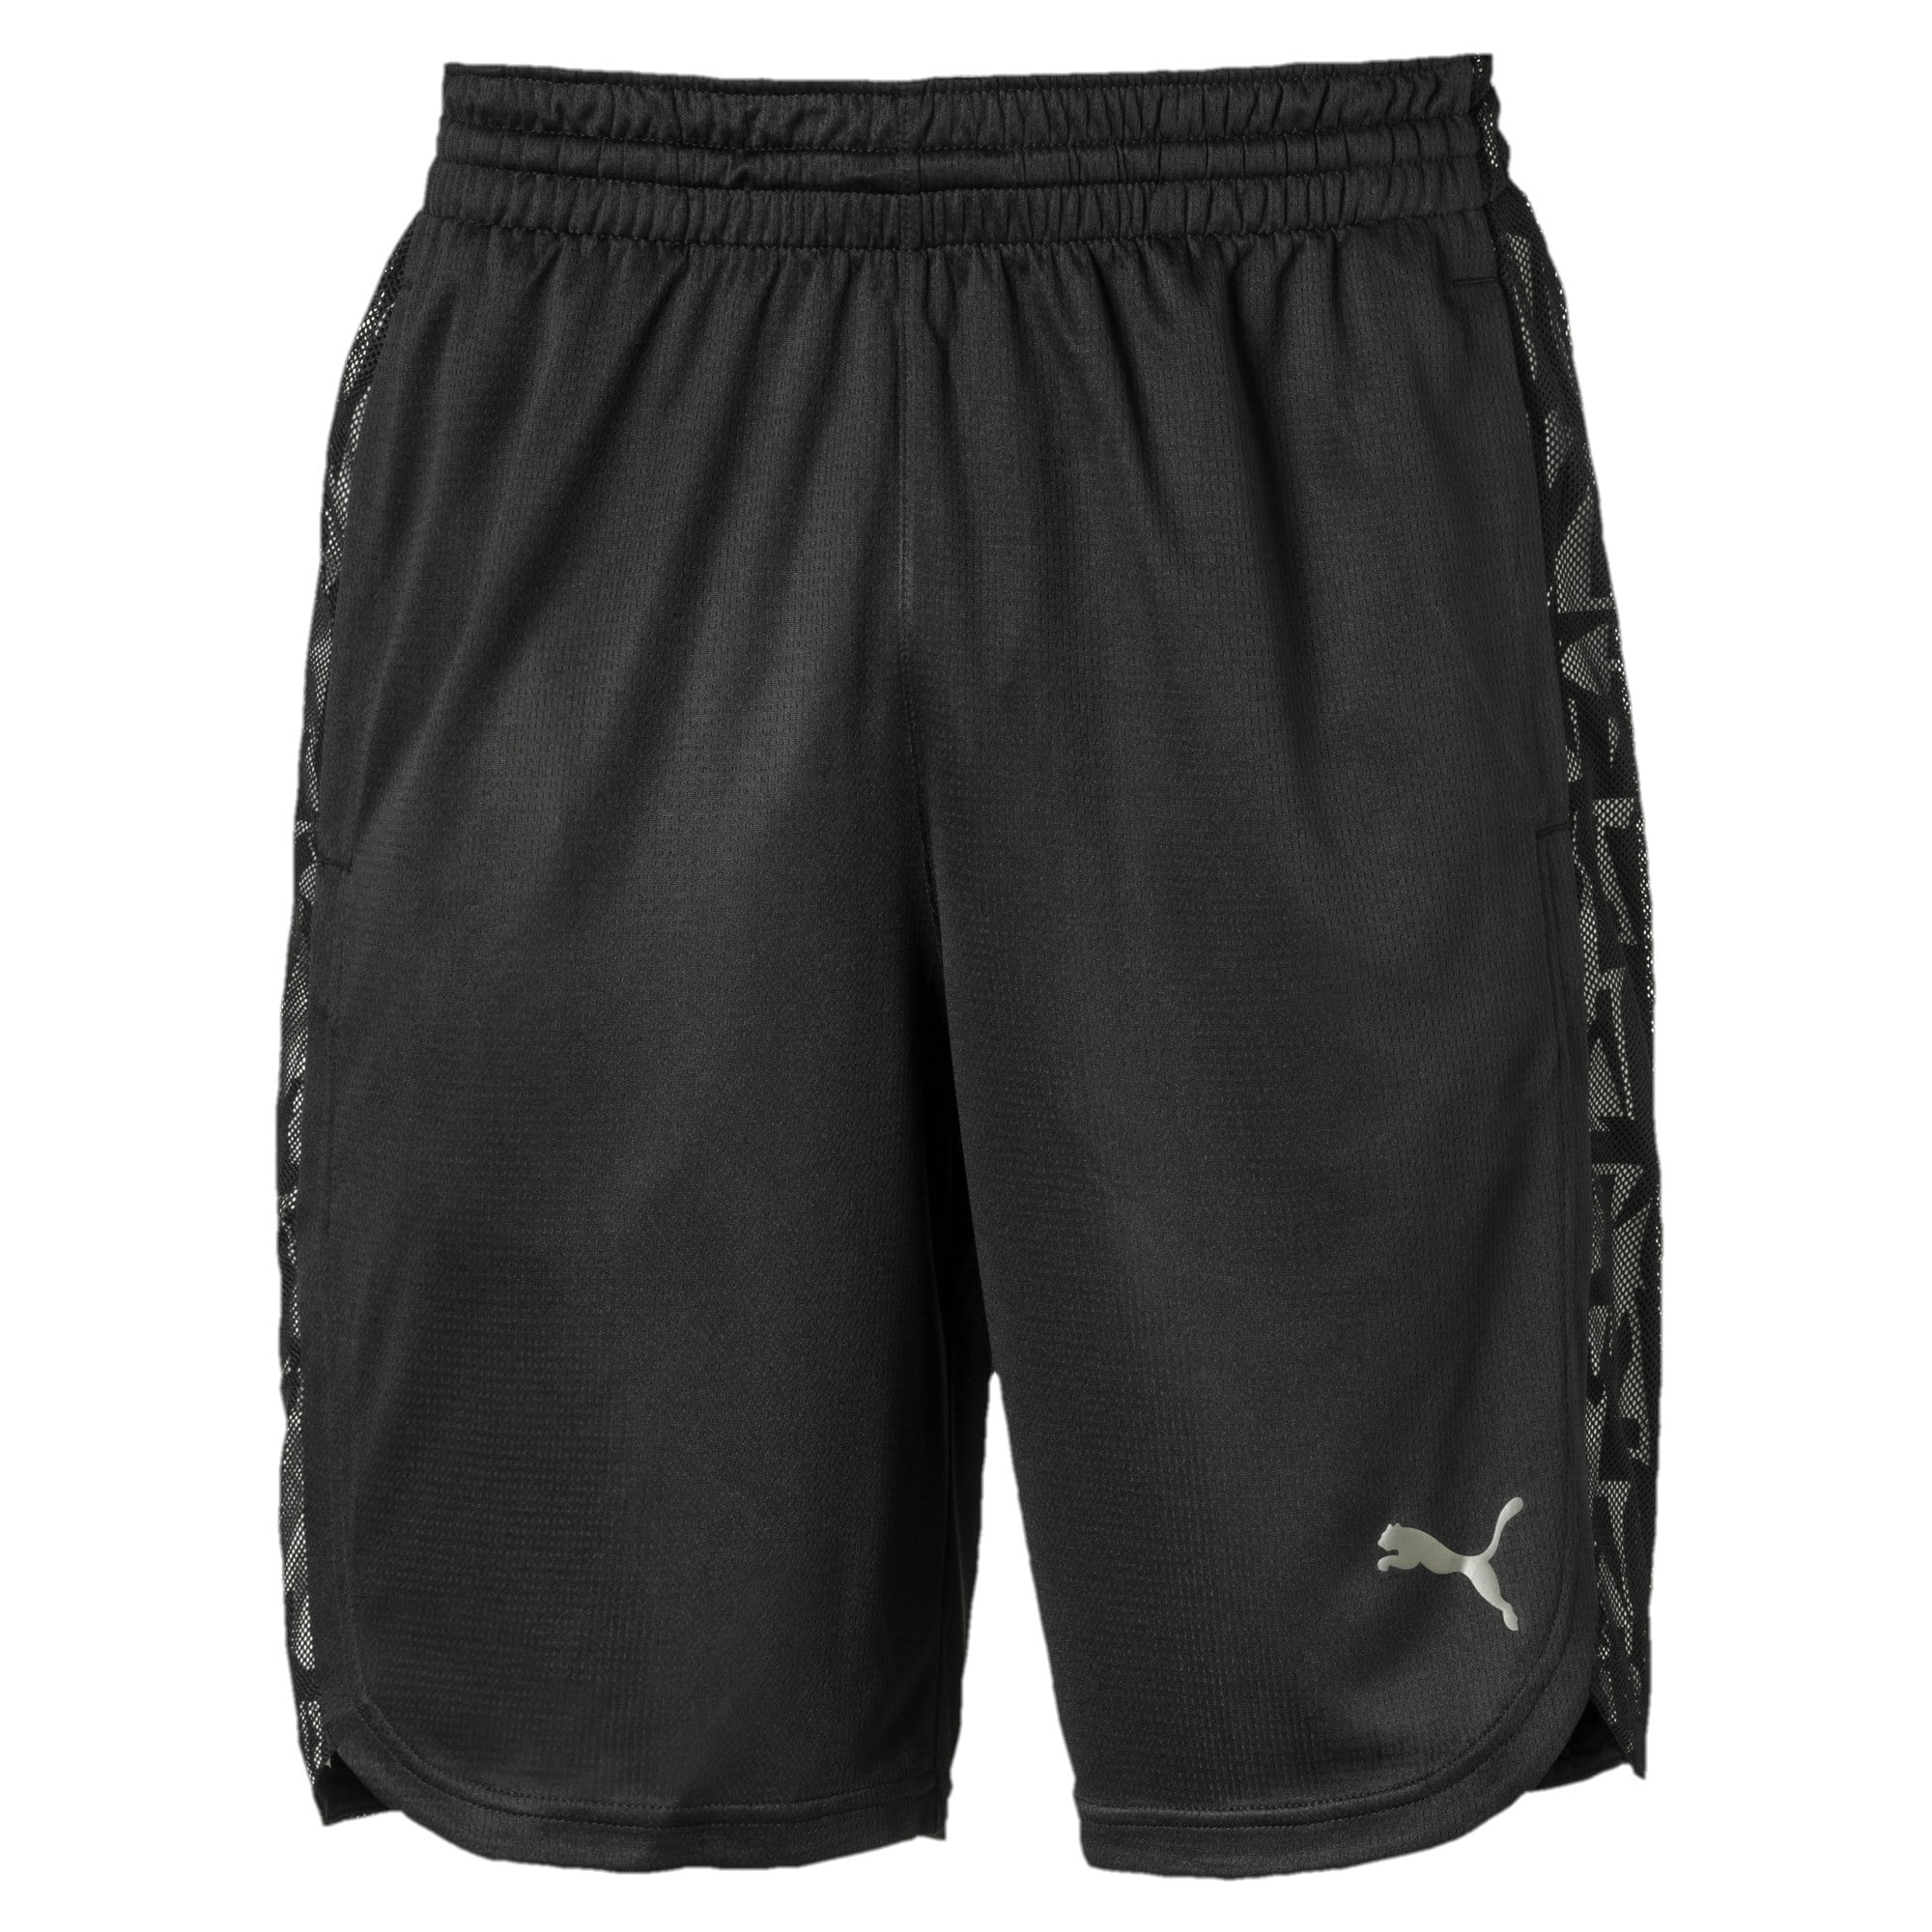 Thumbnail 4 of Power Vent Men's Training Shorts, Puma Black-Puma White, medium-IND